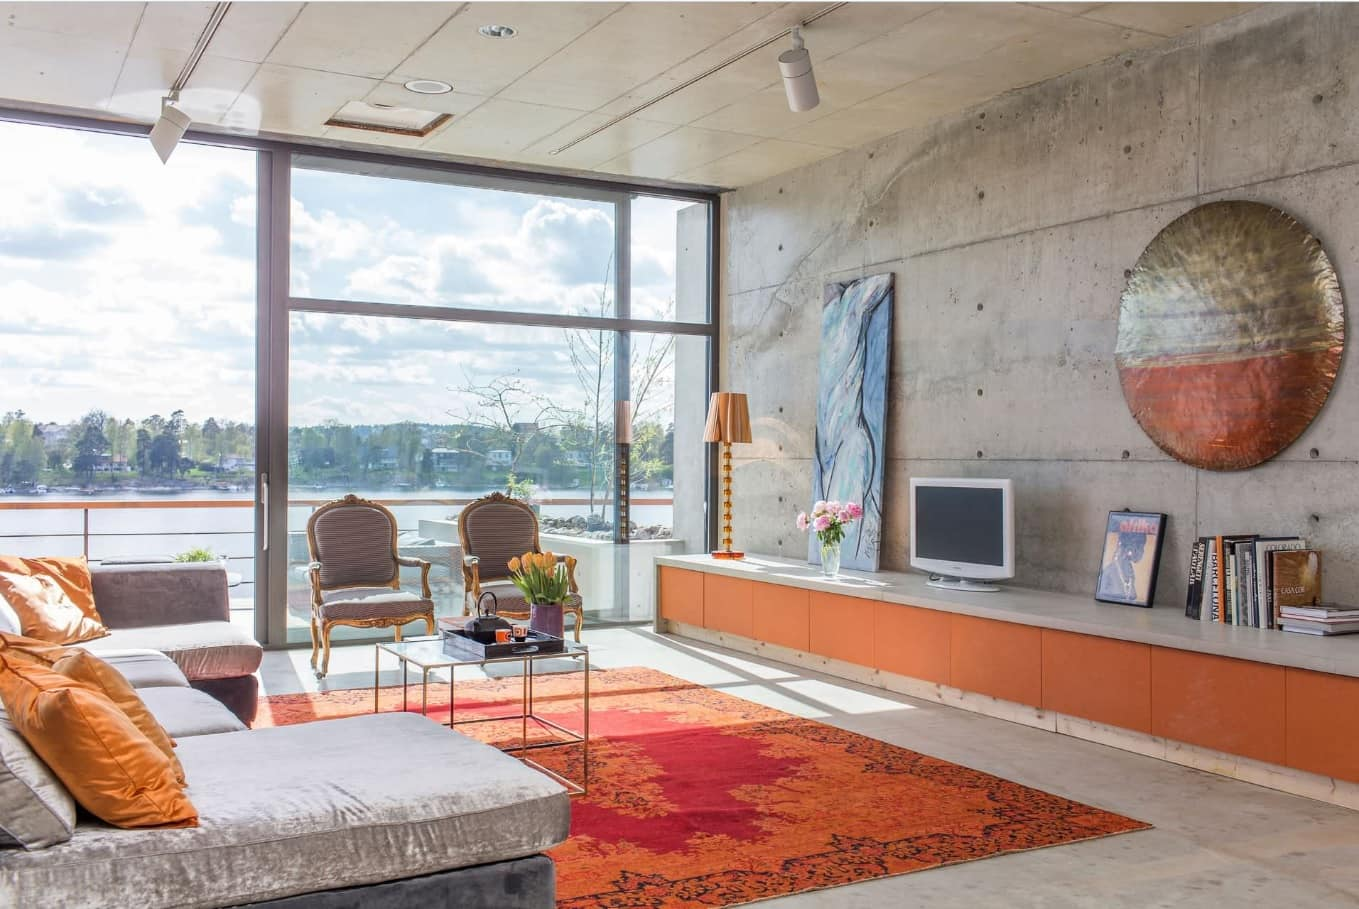 Faux Concrete Wall Paint: Modern and Original Finishing. Plates finished modern living room with panoramic window